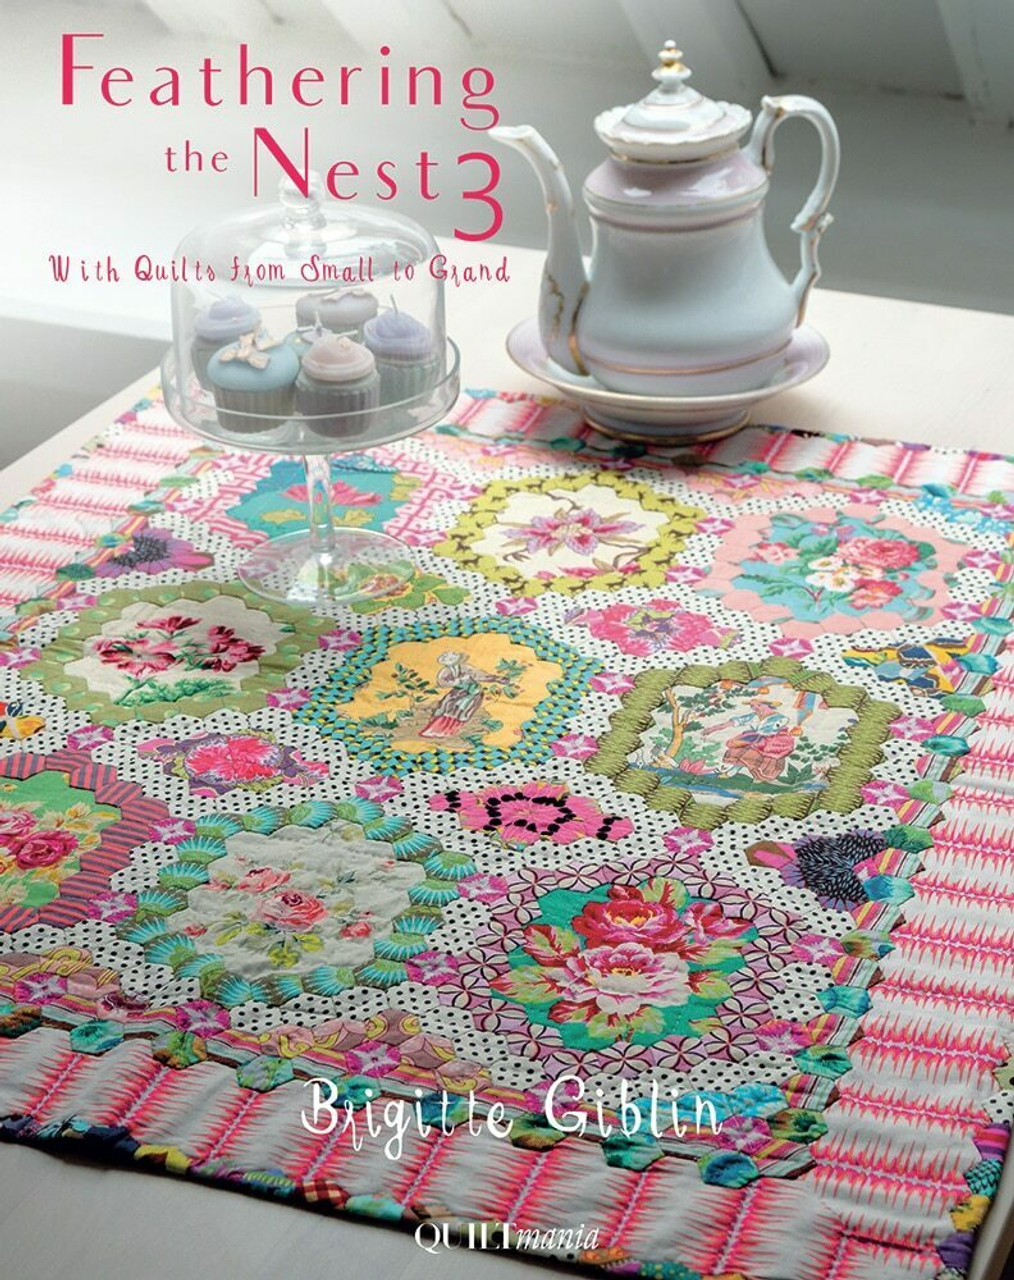 Feathering the Nest 3 - With Quilts from Small to Grand